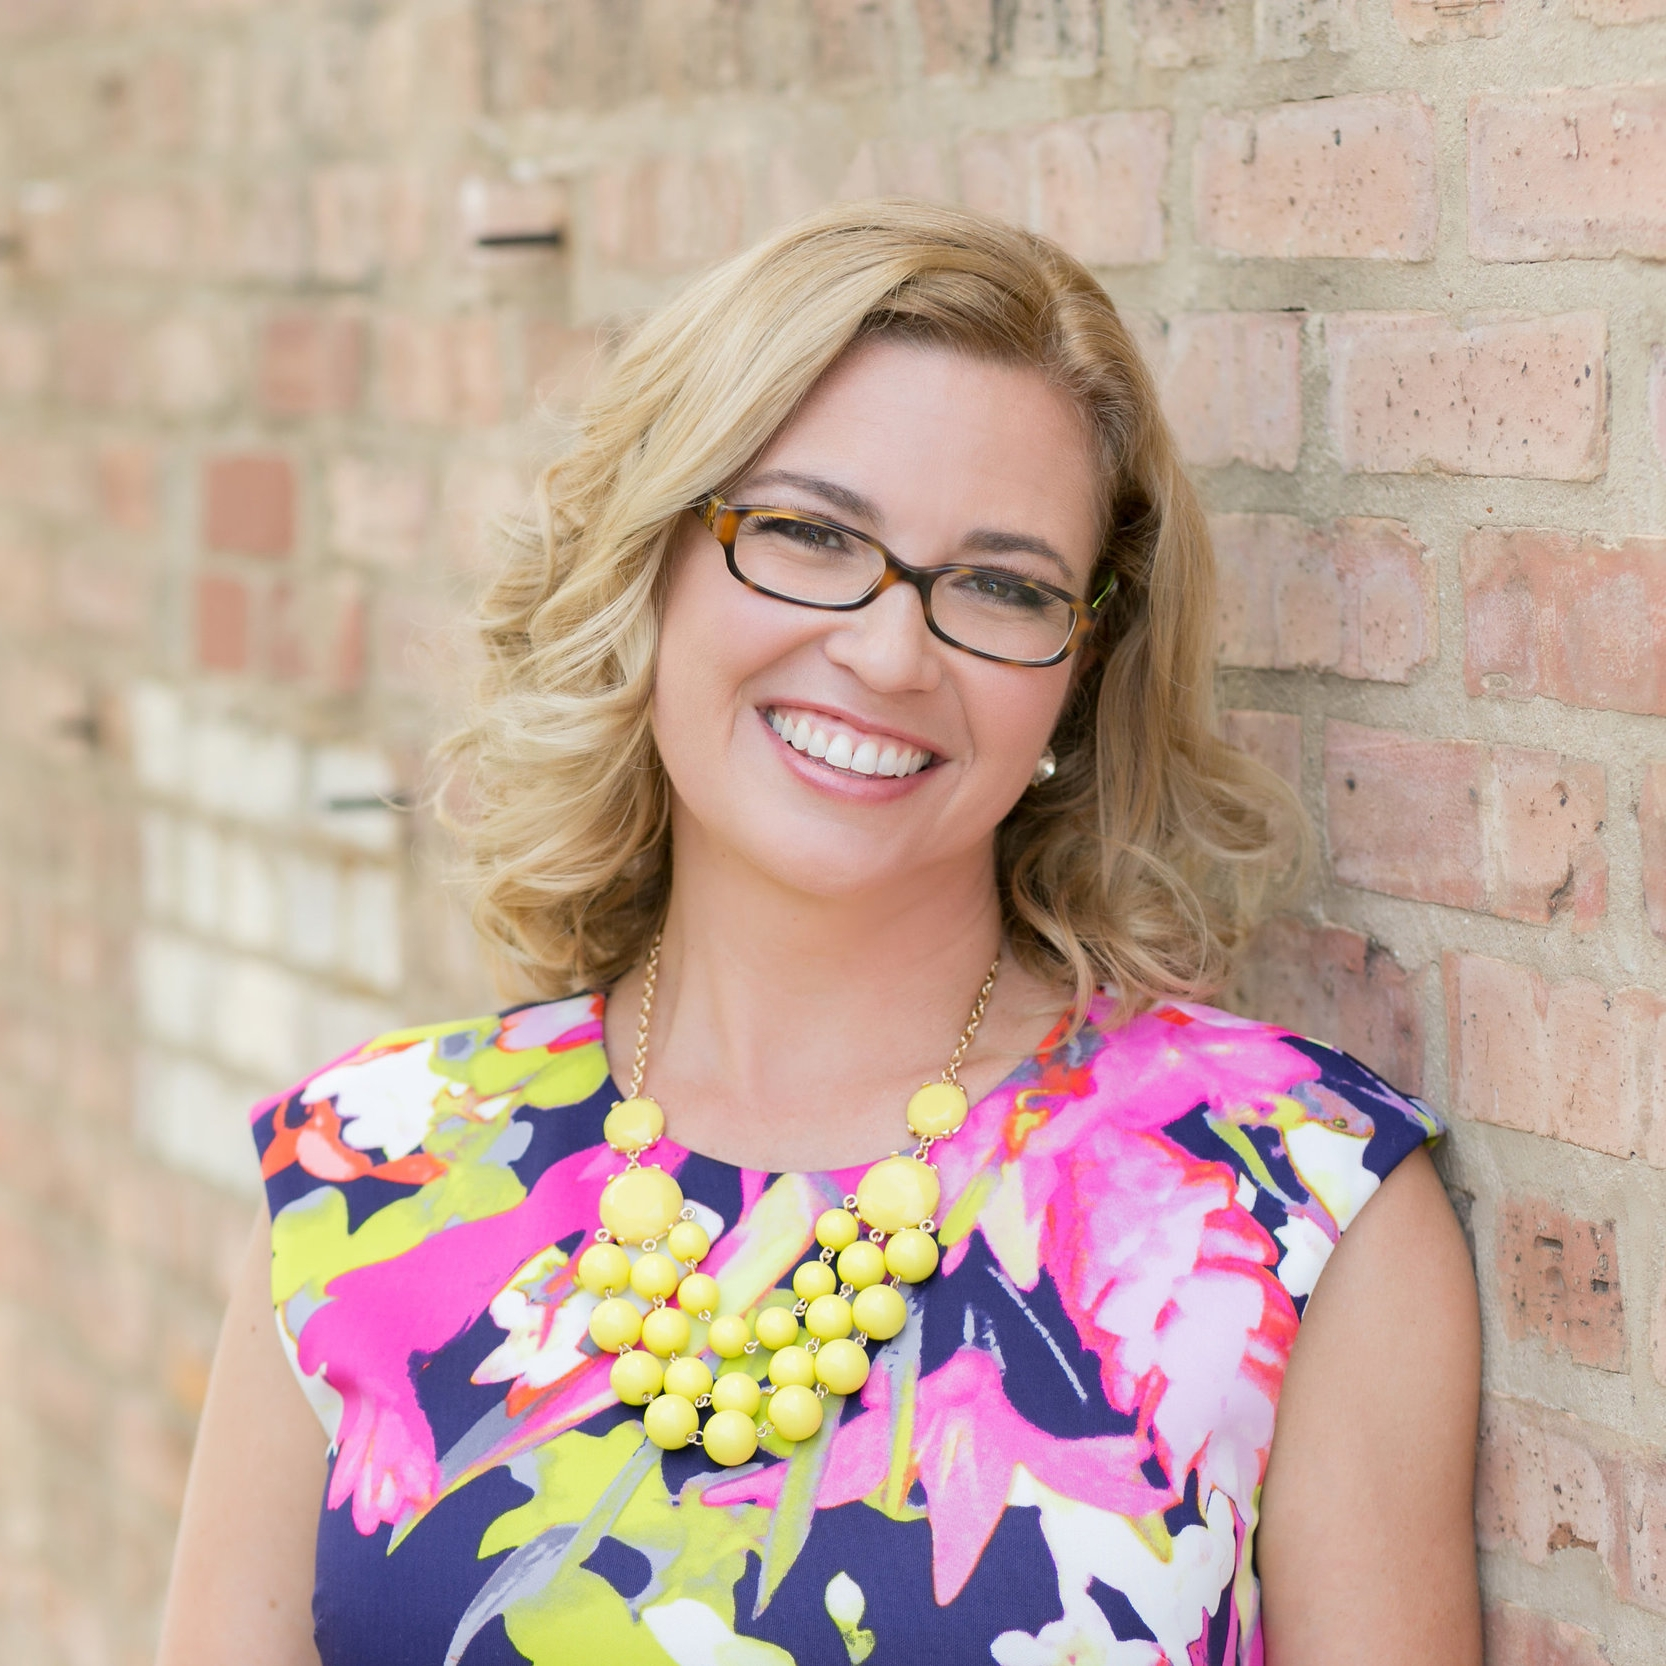 How Gratitude Can Shape Your Business | Being grateful can open the doors to so many things inside your business! | Lady and Company Creative | Alex Lawless, Branding Coach | Empowering Women Through Badass Brands | GUEST BLOGGER: HEATHER VICKERY